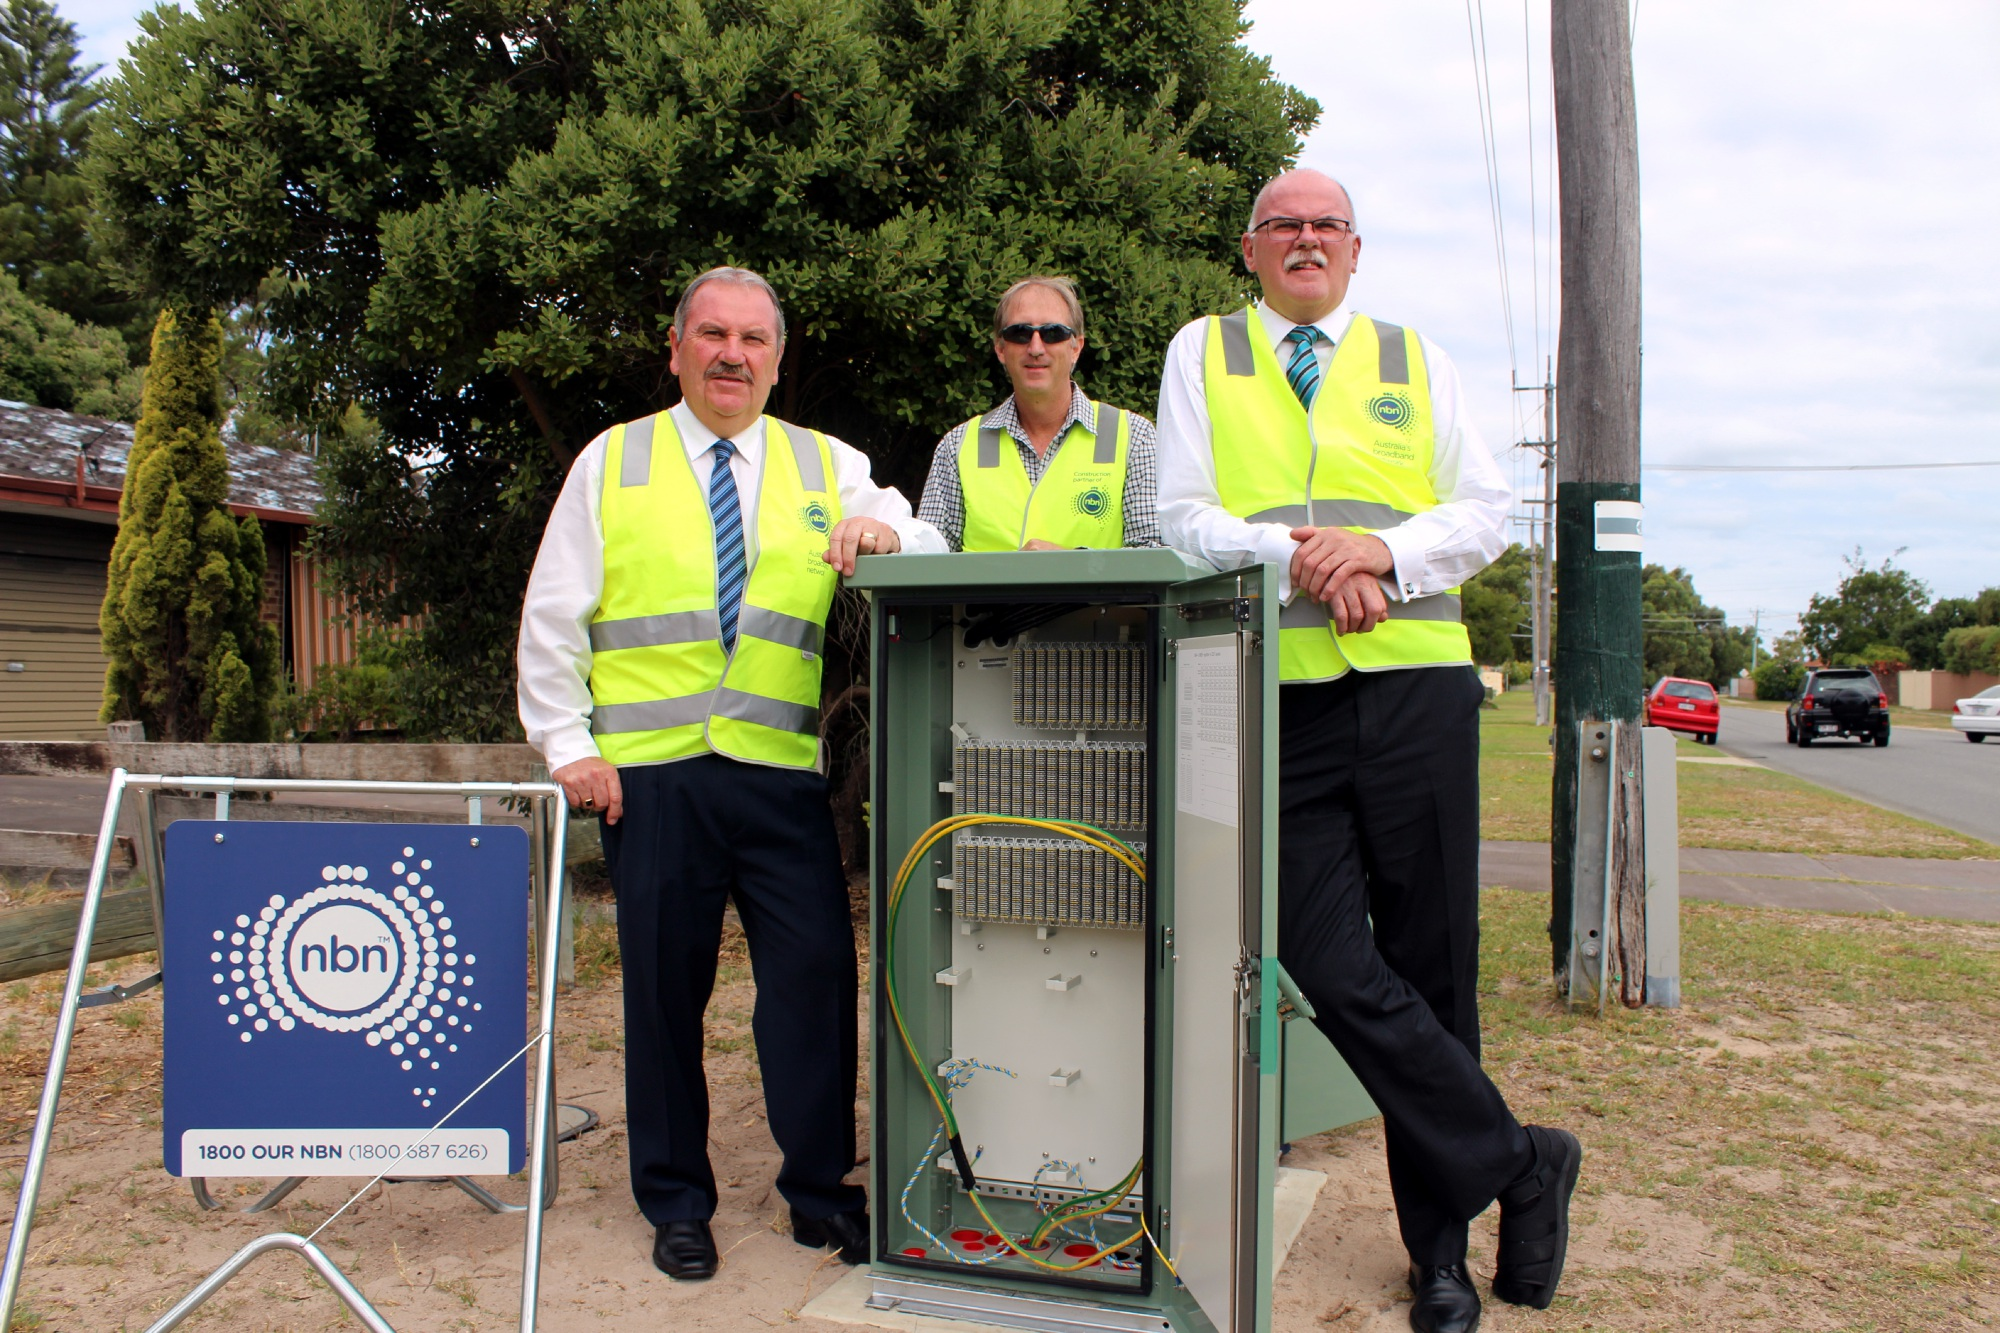 City of Rockingham Mayor Barry Sammels, Downer construction manager Daniel Meerton and City of Rockingham chief executive Andrew Hammond at one of the NBN nodes on Seabrooke Avenue, Rockingham.